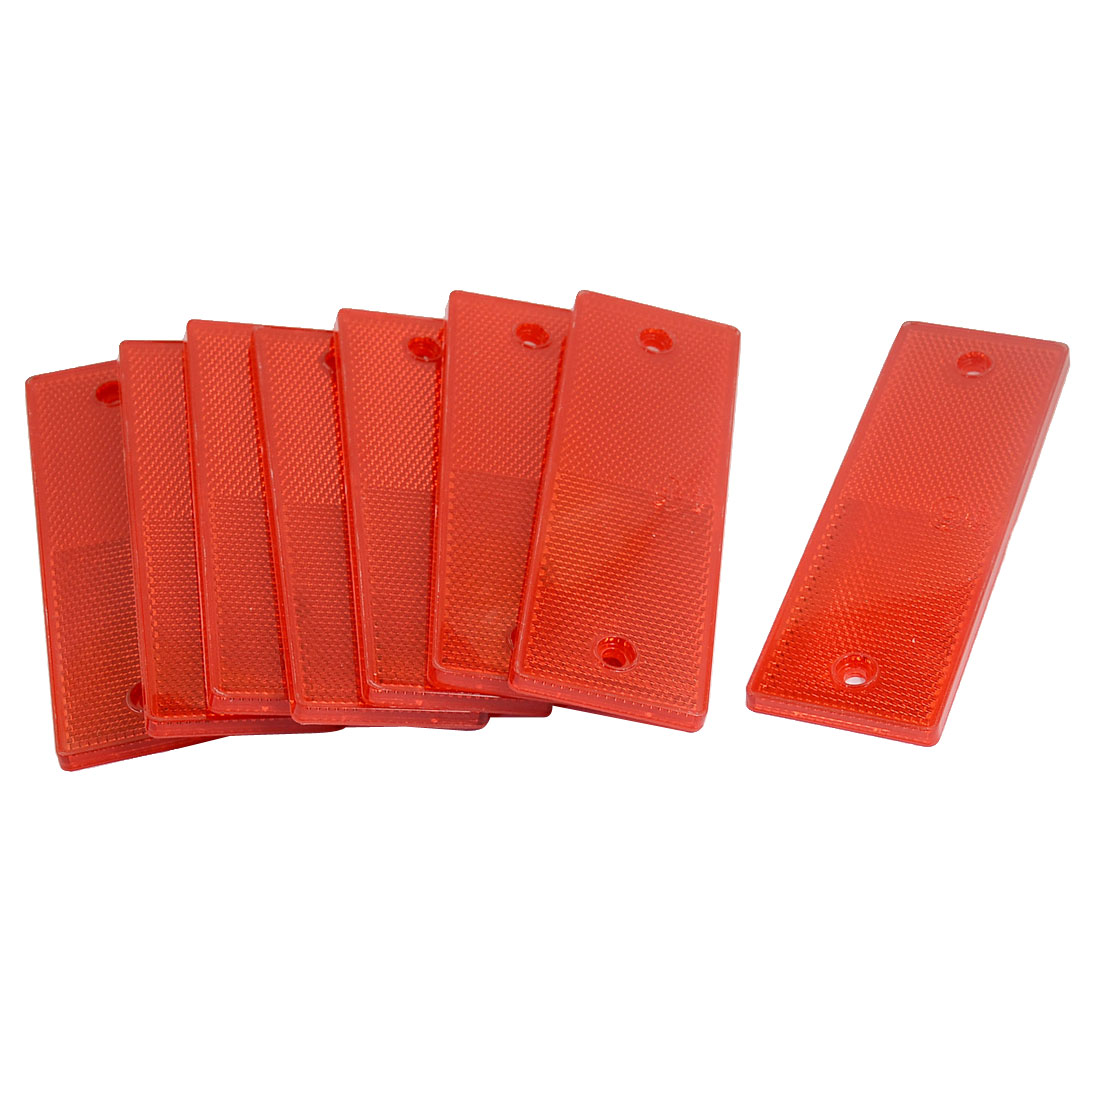 Plastic Rectangle Reflective Warning Plate Reflector Red 8PCS for Car Truck Safety